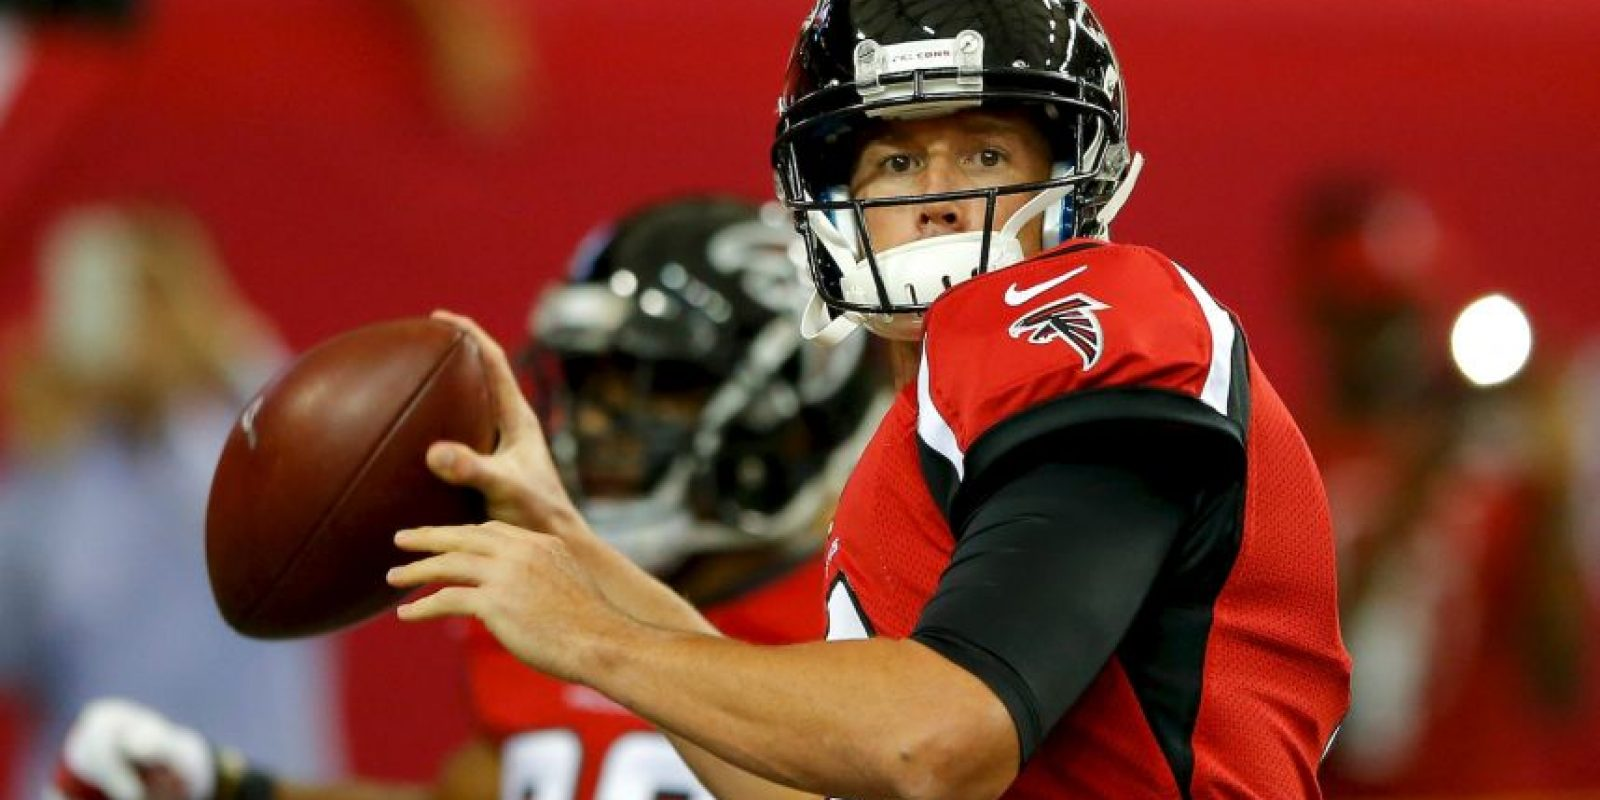 6. Matt Ryan Foto: Getty Images